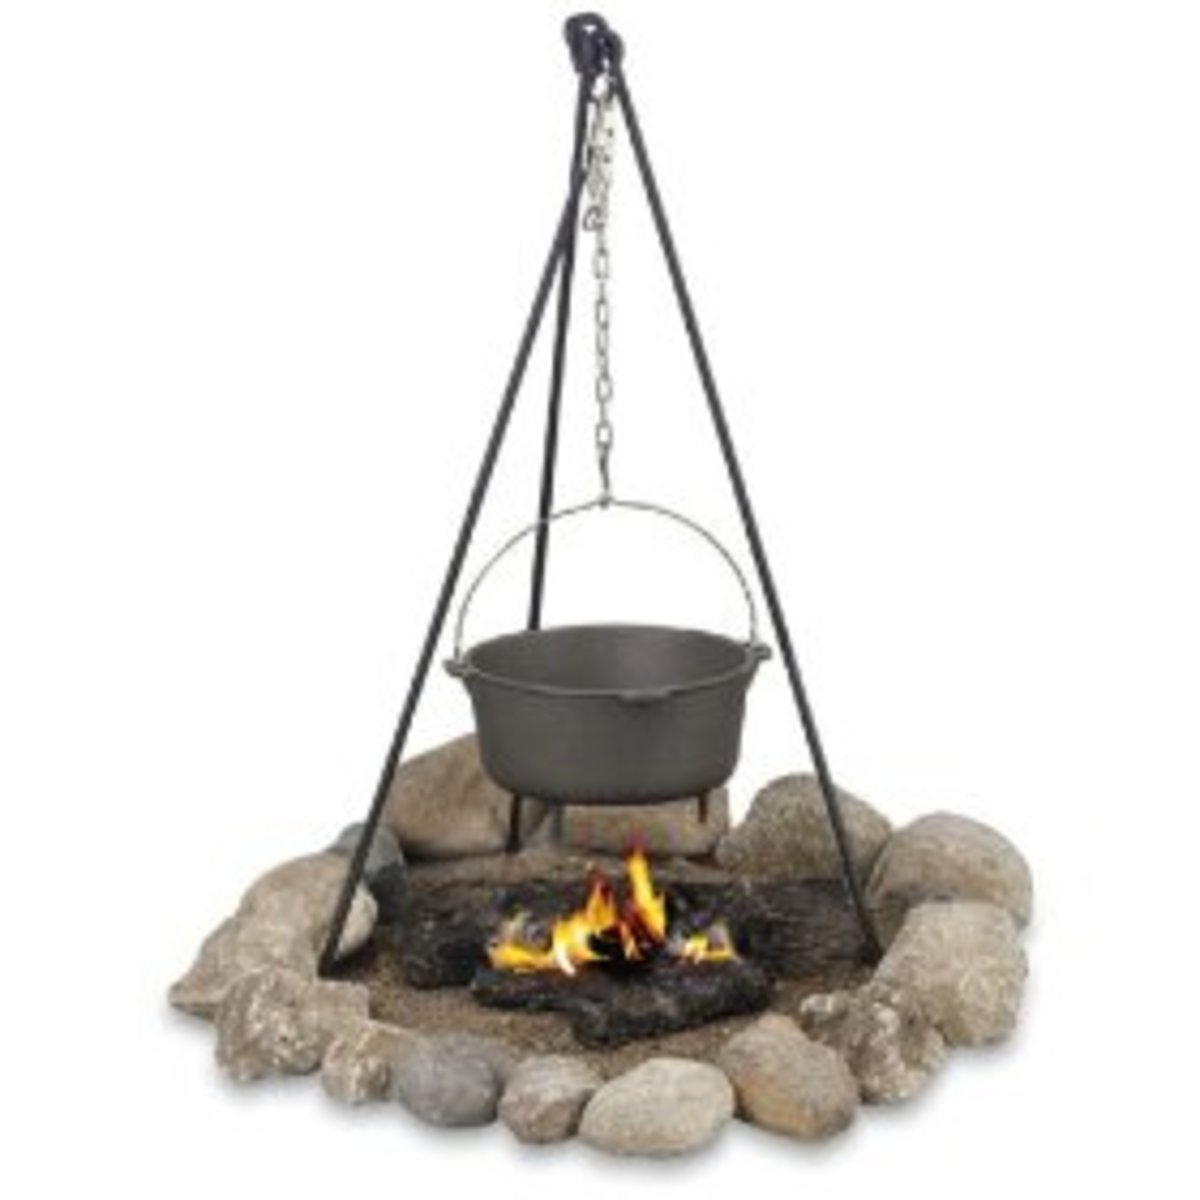 Cast Iron Dutch Oven - Tripod Cooking